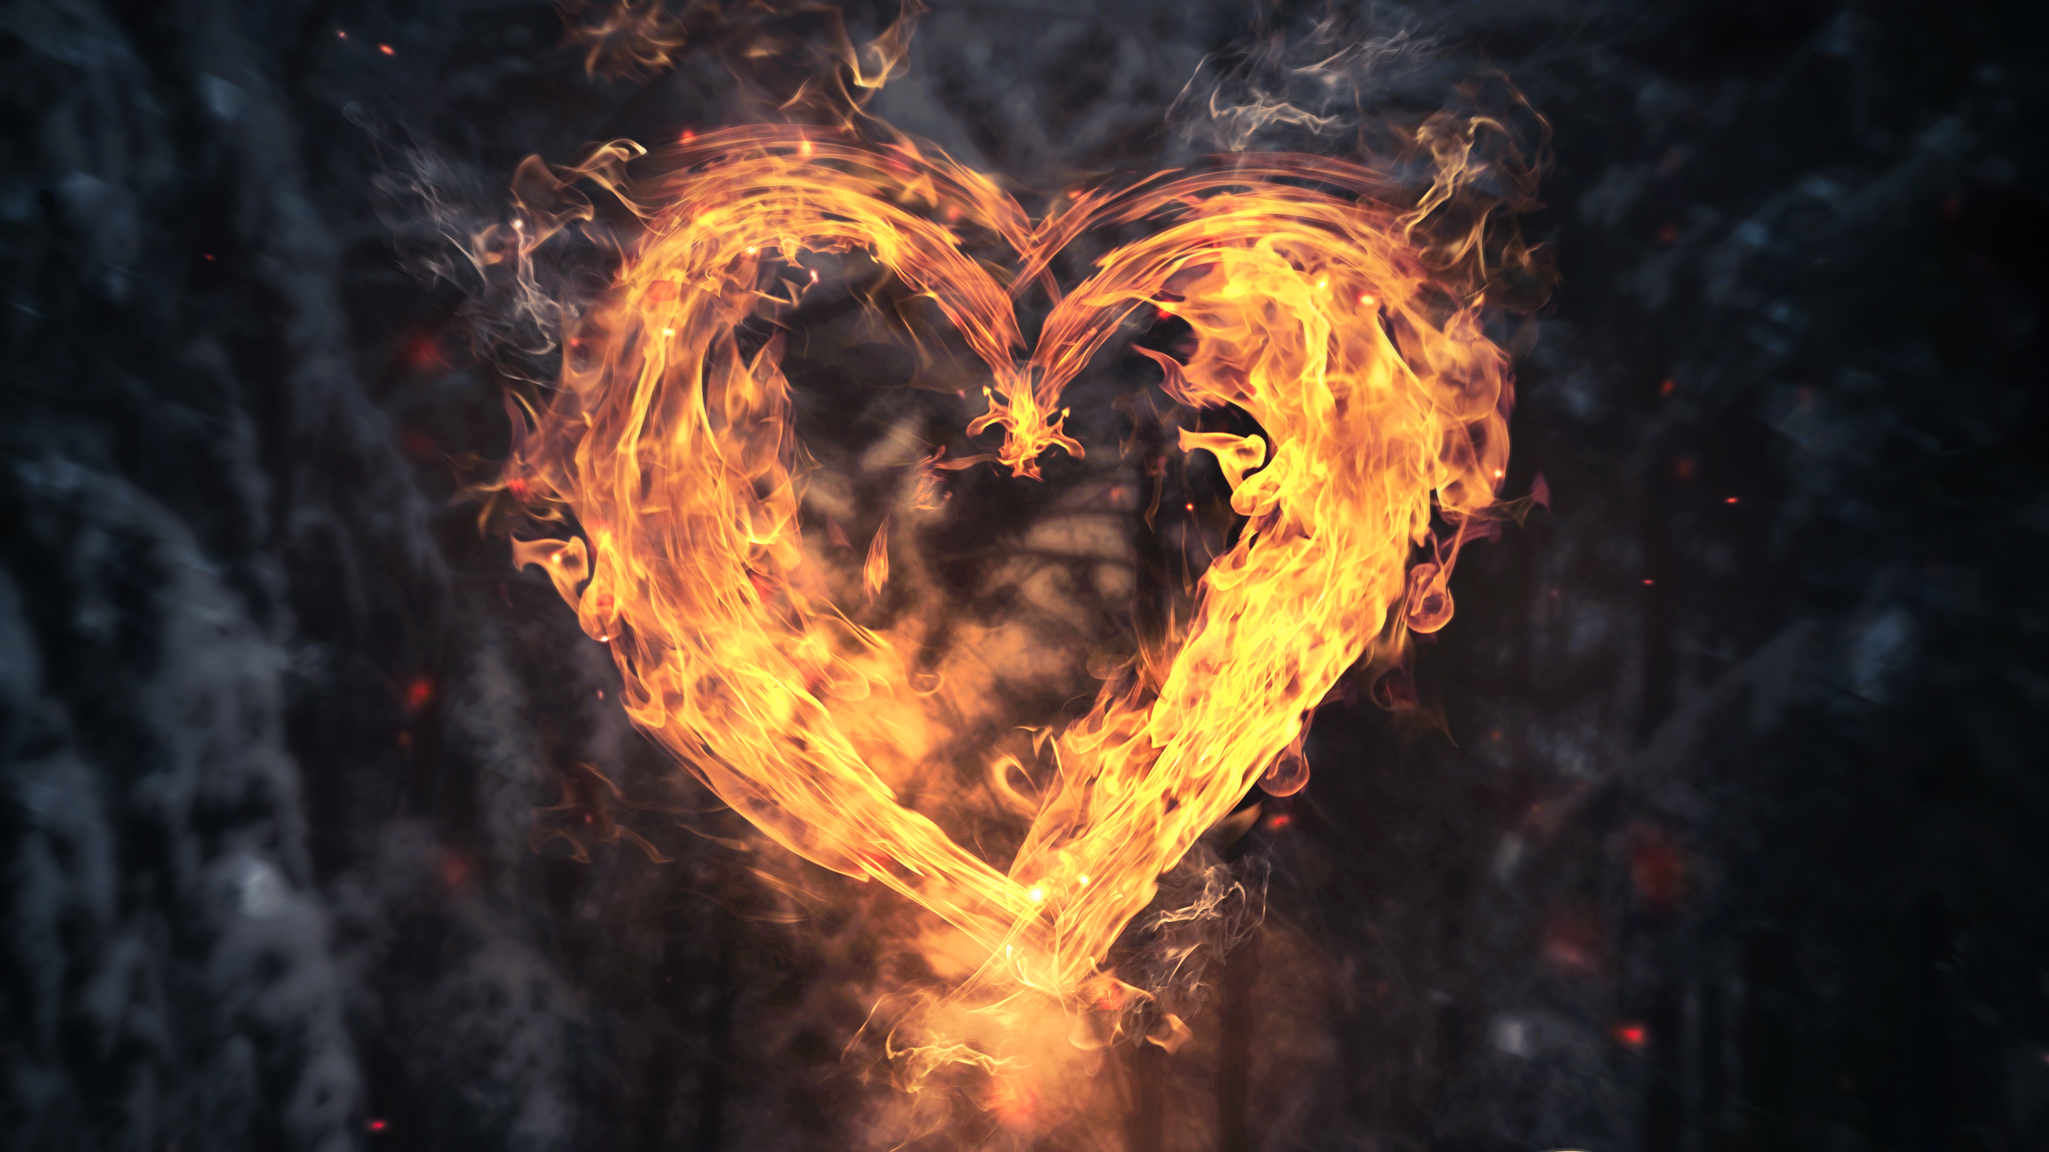 Burning Love Hd Wallpapers: Burning Heart, HD Love, 4k Wallpapers, Images, Backgrounds